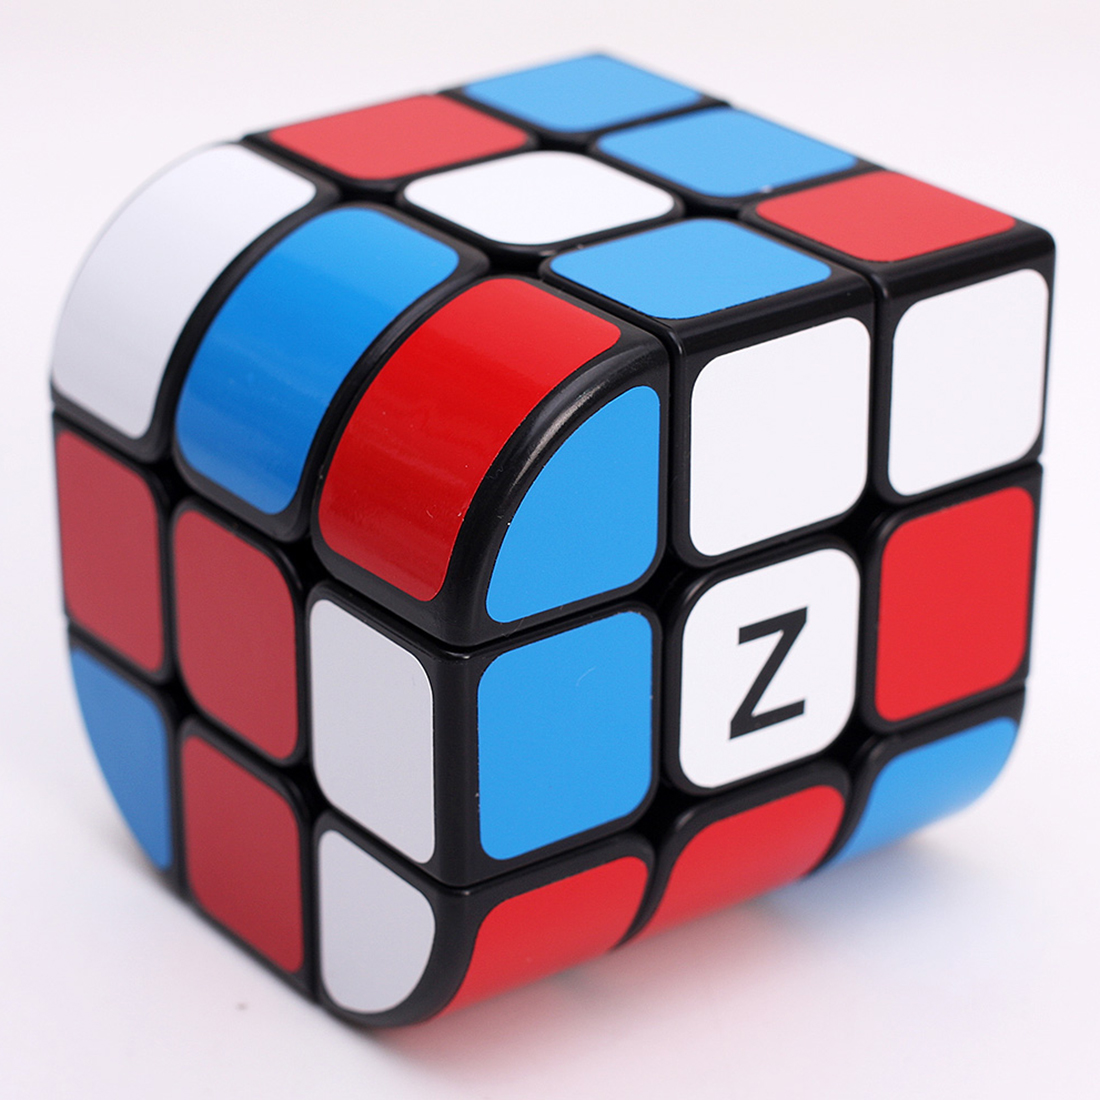 ZCUBE Penrose Cube Trihedron Magic Cube Puzzle Toys for Competition Challenge dayan gem vi cube speed puzzle magic cubes educational game toys gift for children kids grownups